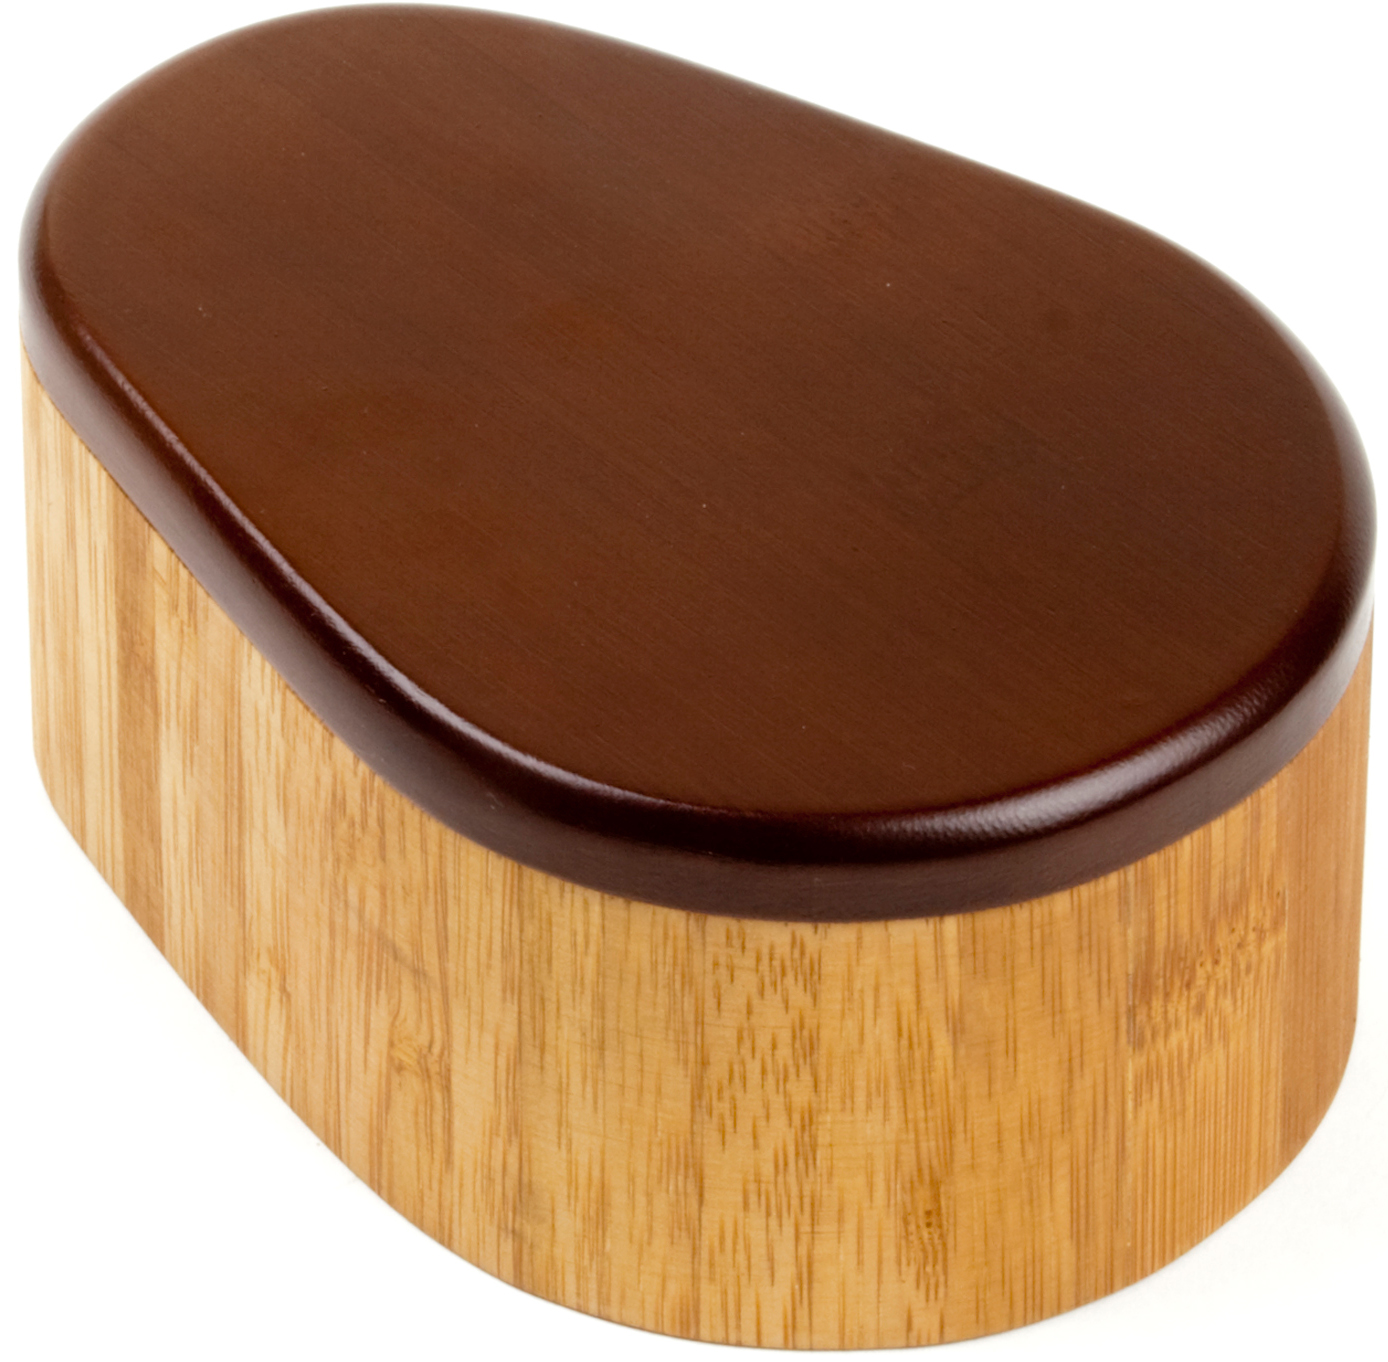 Anchor Hocking 2-Toned Bamboo Salt Box with Espresso Colored Lid